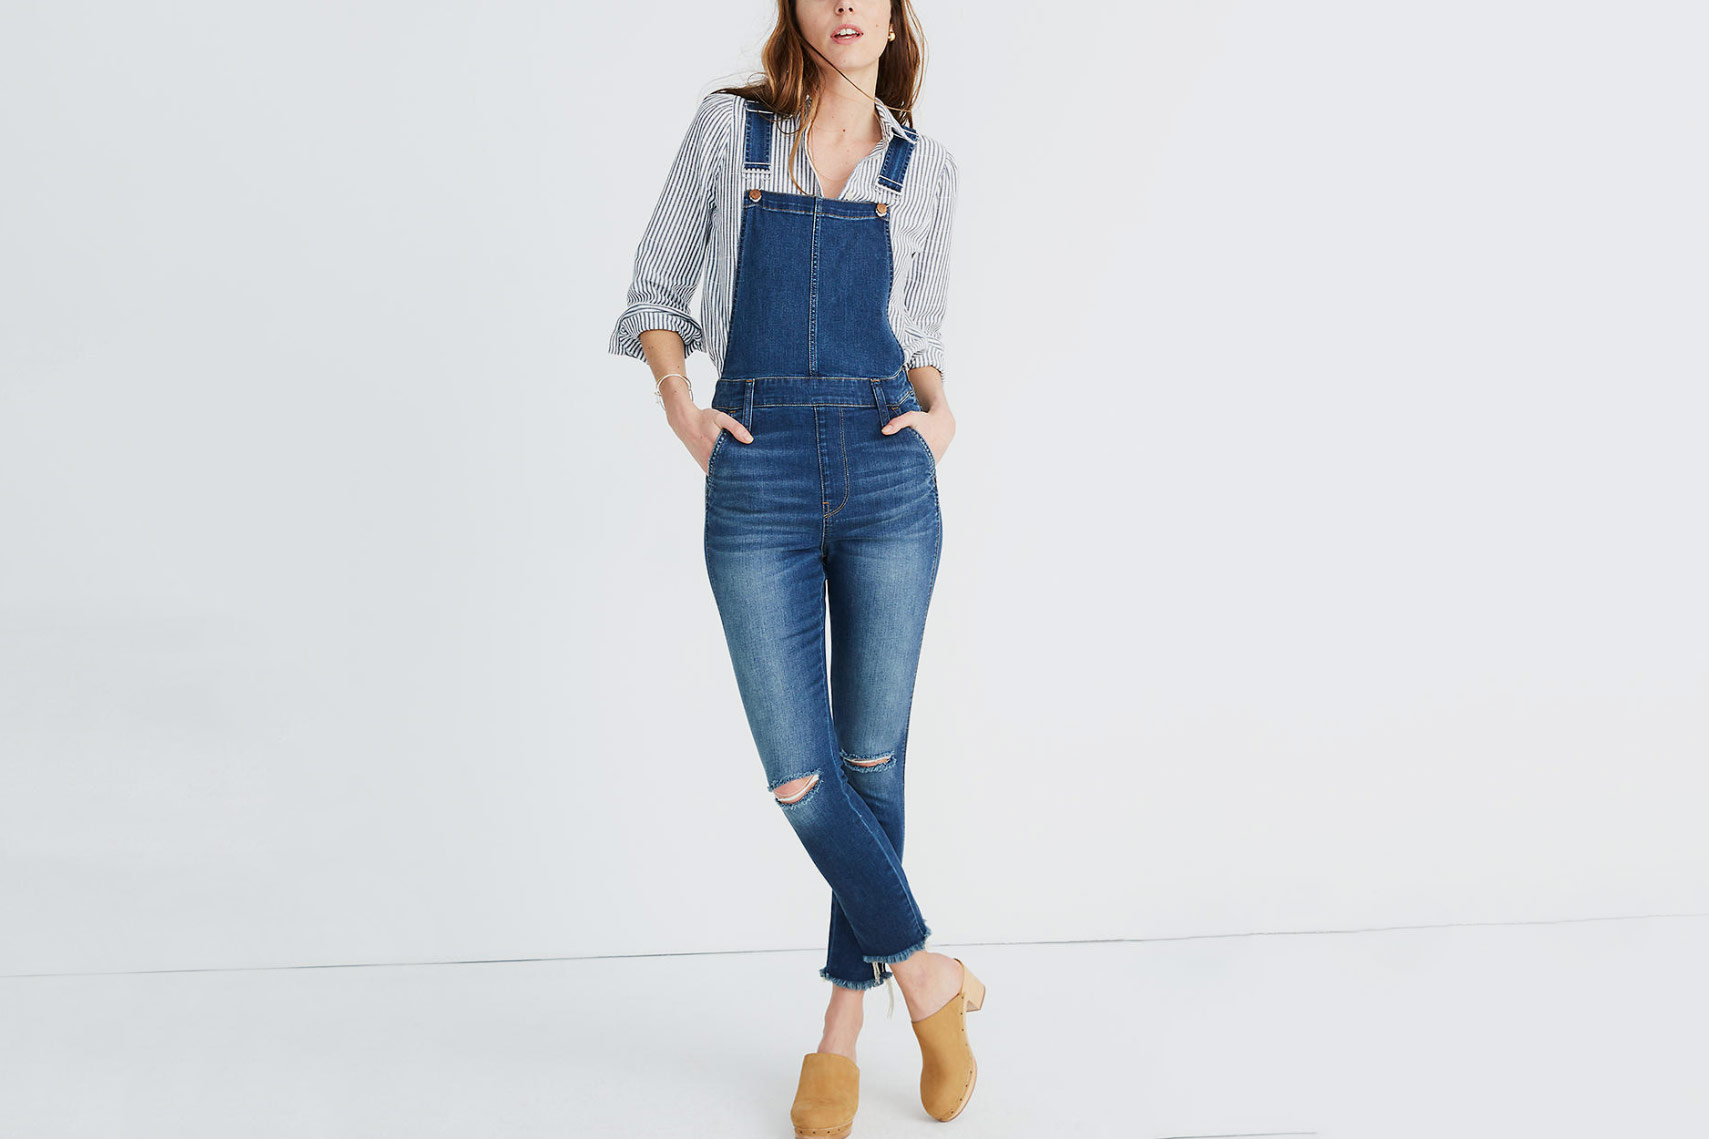 Madewell Roadtripper Overalls in Brodie Wash